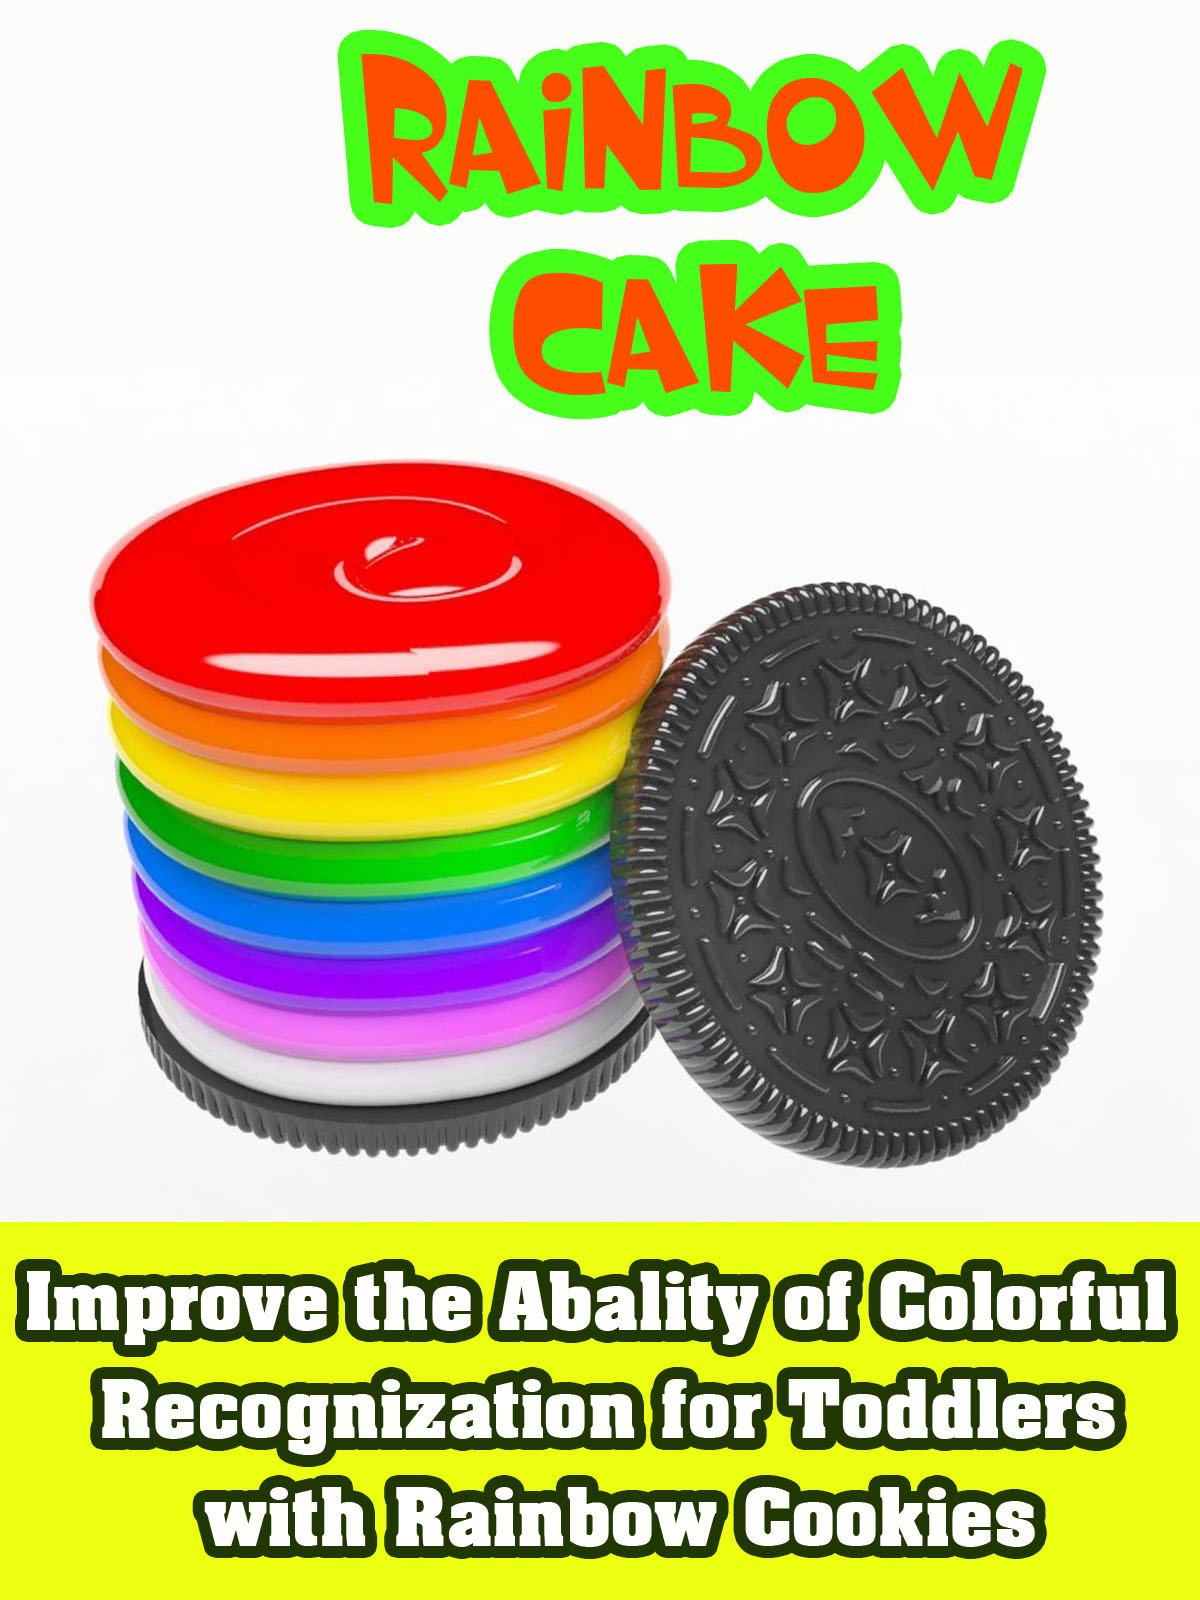 Improve the Abality of Colorful Recognization for toddlers with Rainbow cookies